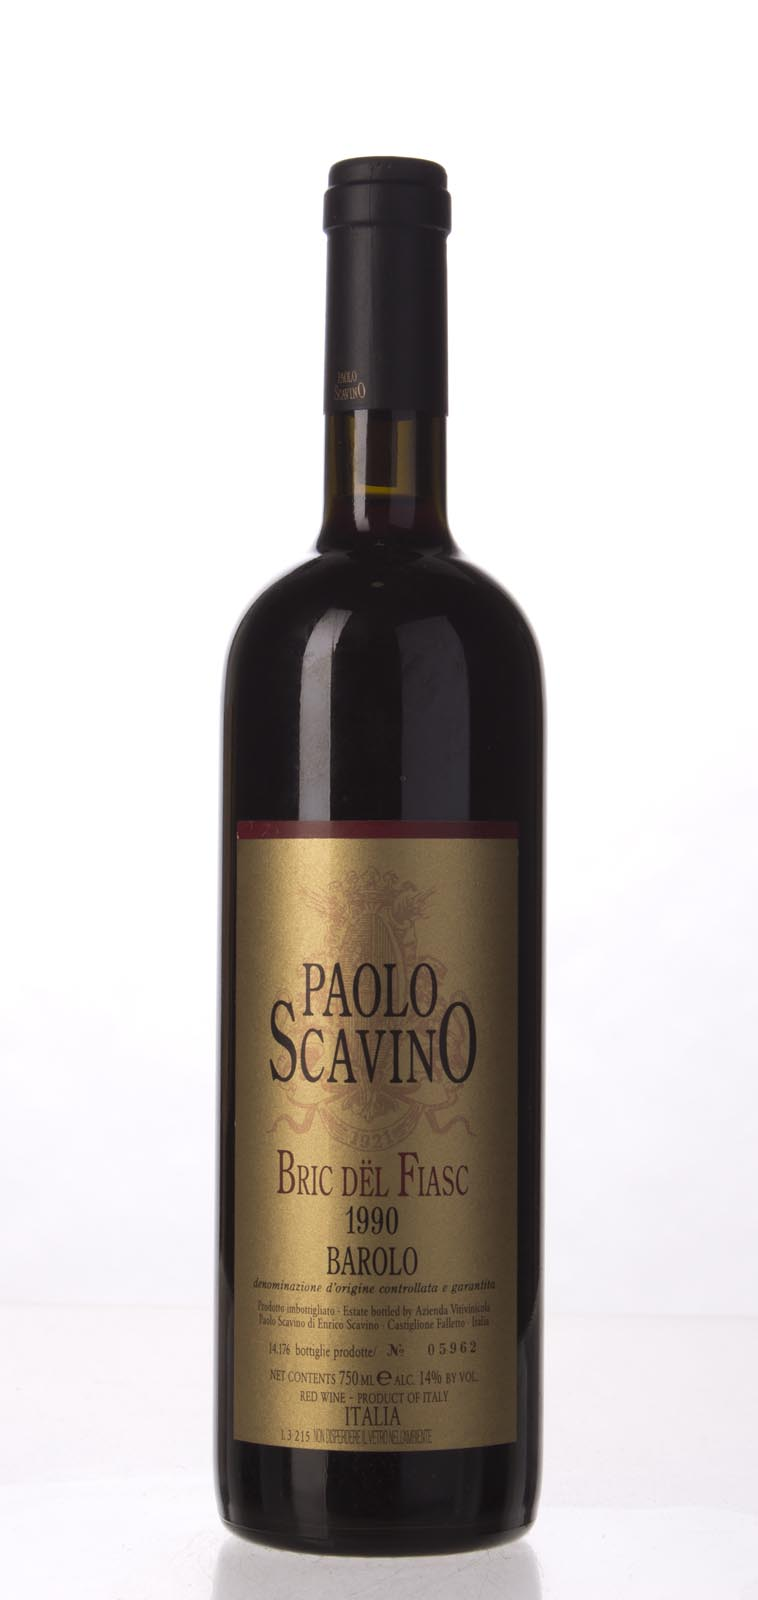 Paolo Scavino Barolo Bric del Fiasc 1990, 750mL (WA97) from The BPW - Merchants of rare and fine wines.